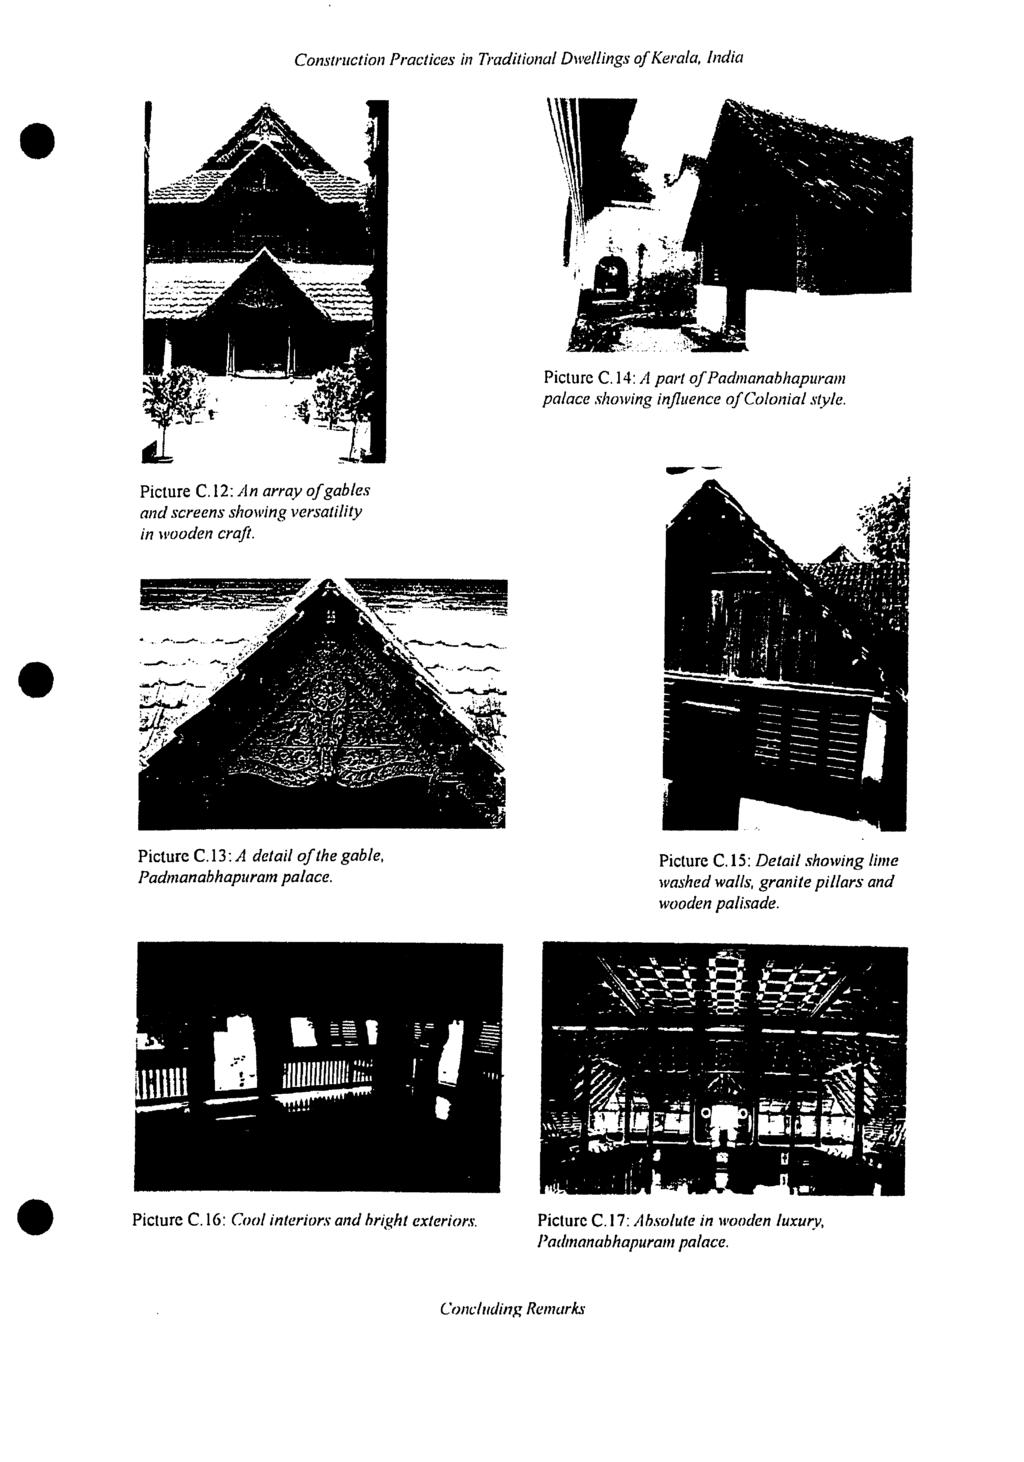 . India Picturc C.14: A part ofpadmanabhapuram palace s!7owing influence ofcolonial style. Picture C.I2: An array ofgables and screens showing versatility in waoden craft Picture C.